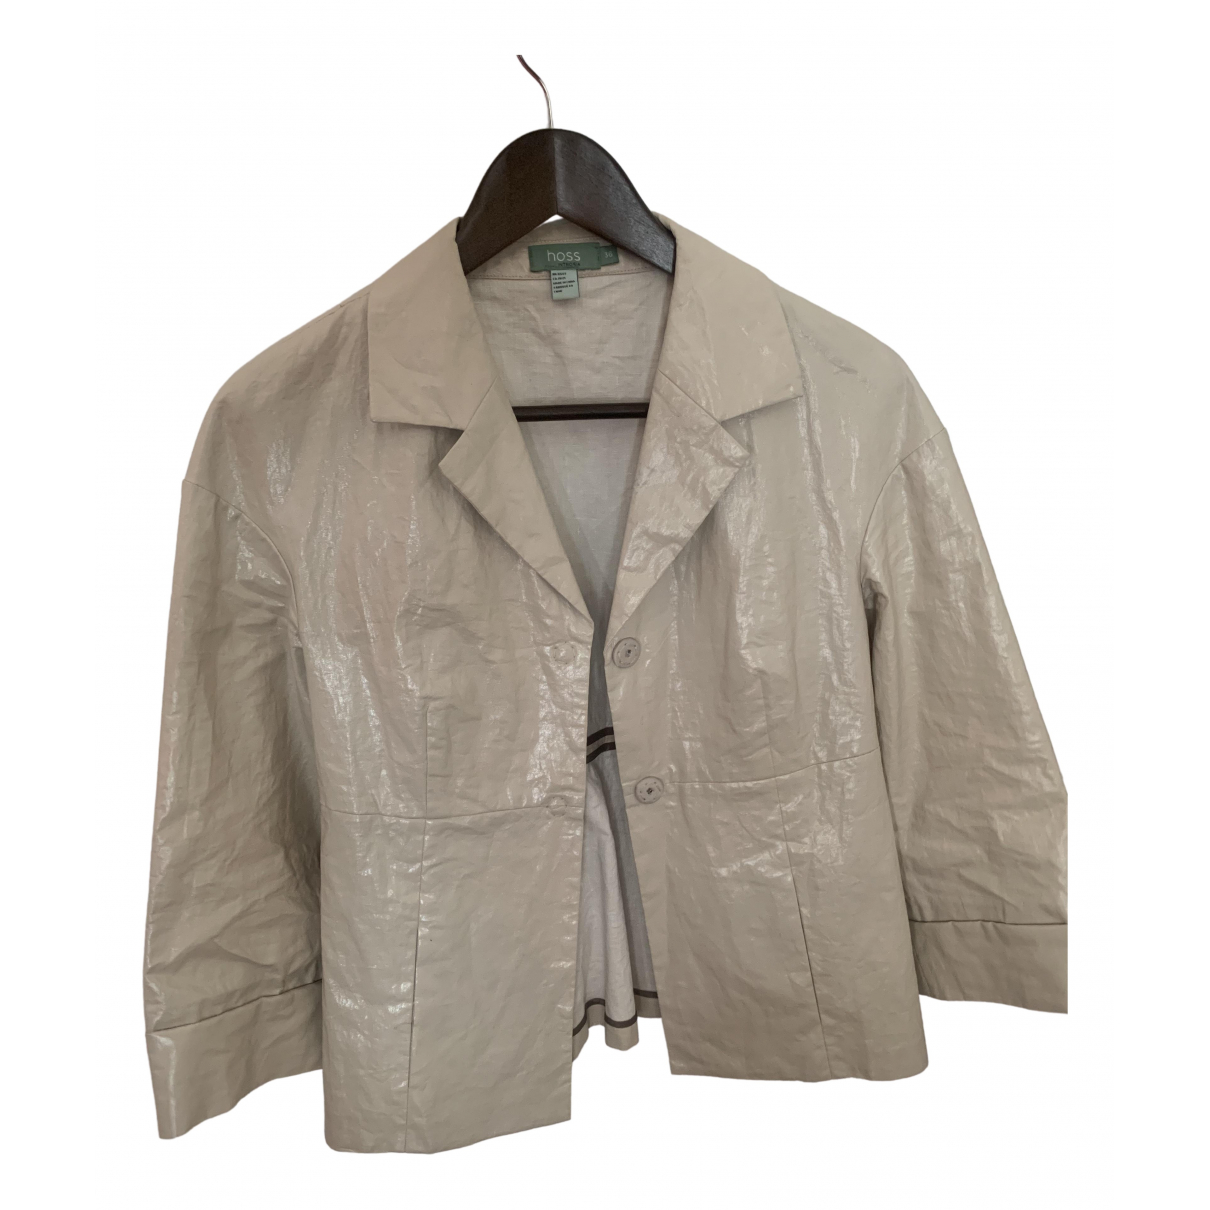 Hoss Intropia \N Beige Linen jacket for Women 38 IT